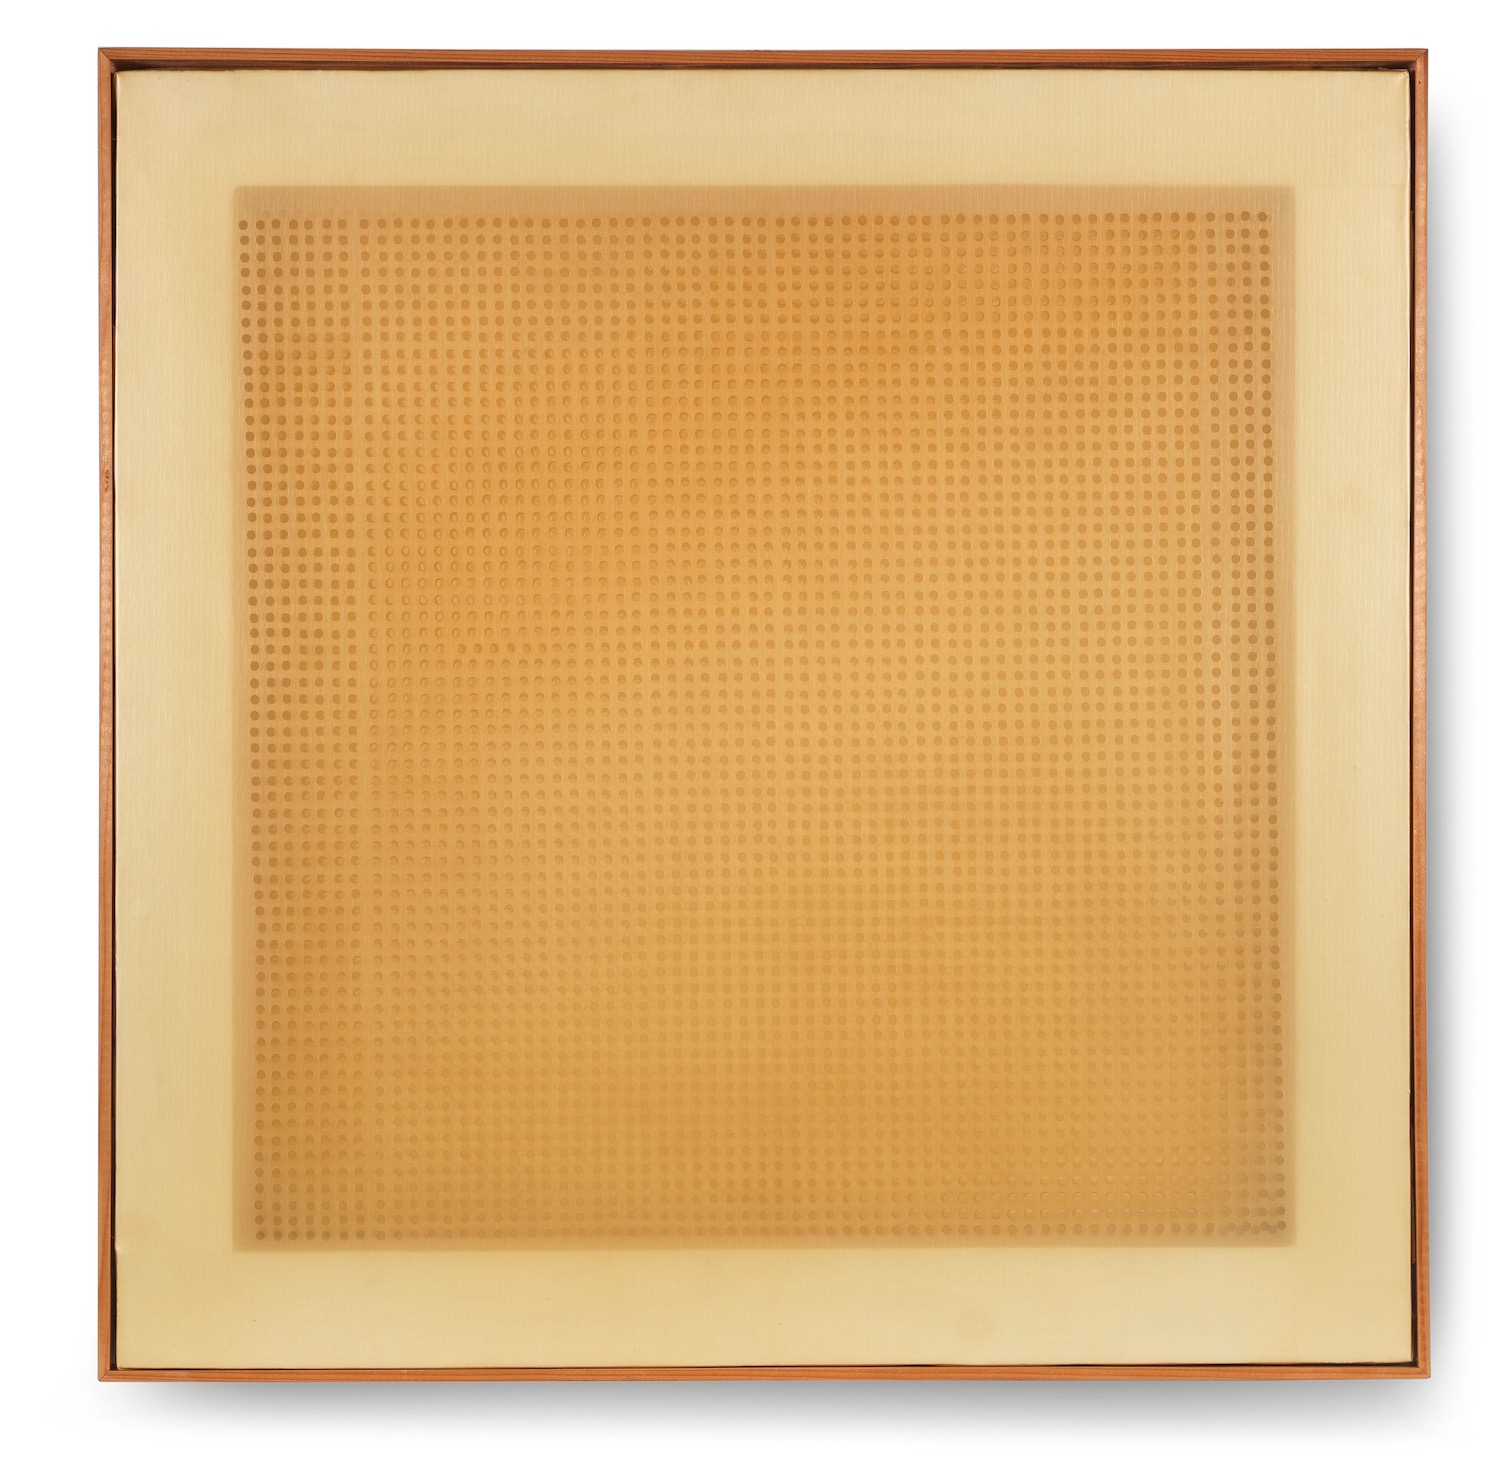 Dadamaino Volume A Moduli Sfasati, 1960 Three perforated and superimposed plastic canvases on two wooden stretcher 60 x 60 cm | 23 2/3 x 23 2/3 in framed: 81 x 81 cm | 32 x 32 in DAD/O 2